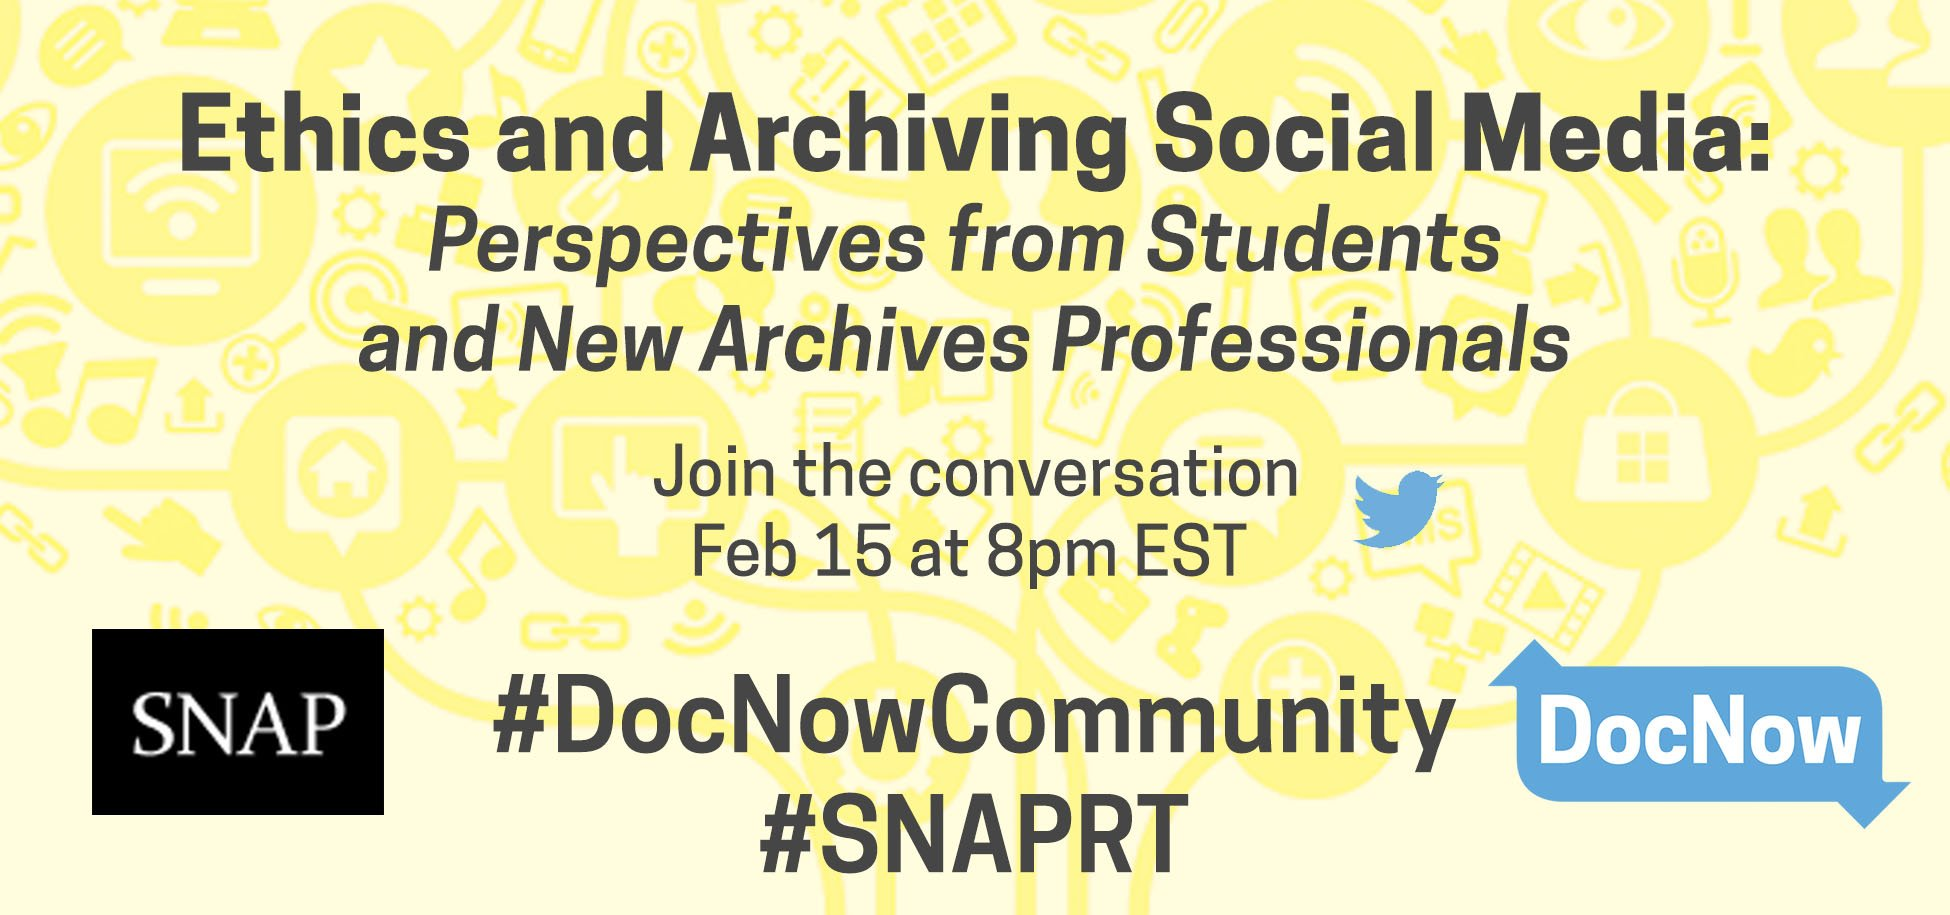 Announcing our joint #snaprt #docnowcommunity chat with @documentnow on February 15 at 8pm ET!  https://t.co/45TrILmIEw https://t.co/9nPsXki3gE